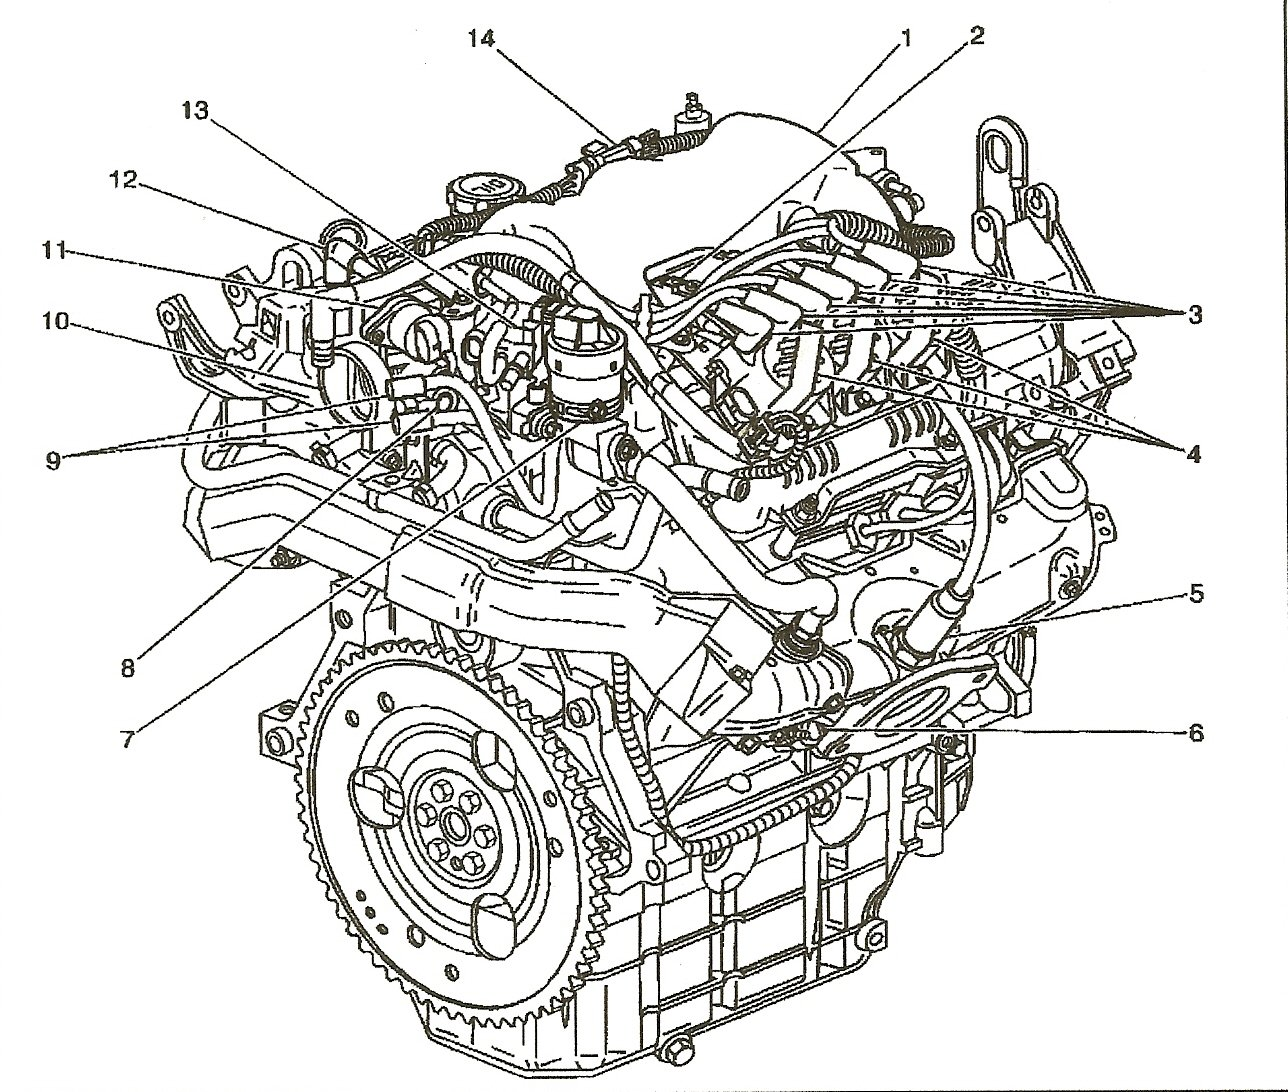 2004 Monte Carlo Engine Diagram Great Design Of Wiring 1985 2000 Parts Car Tuning 1995